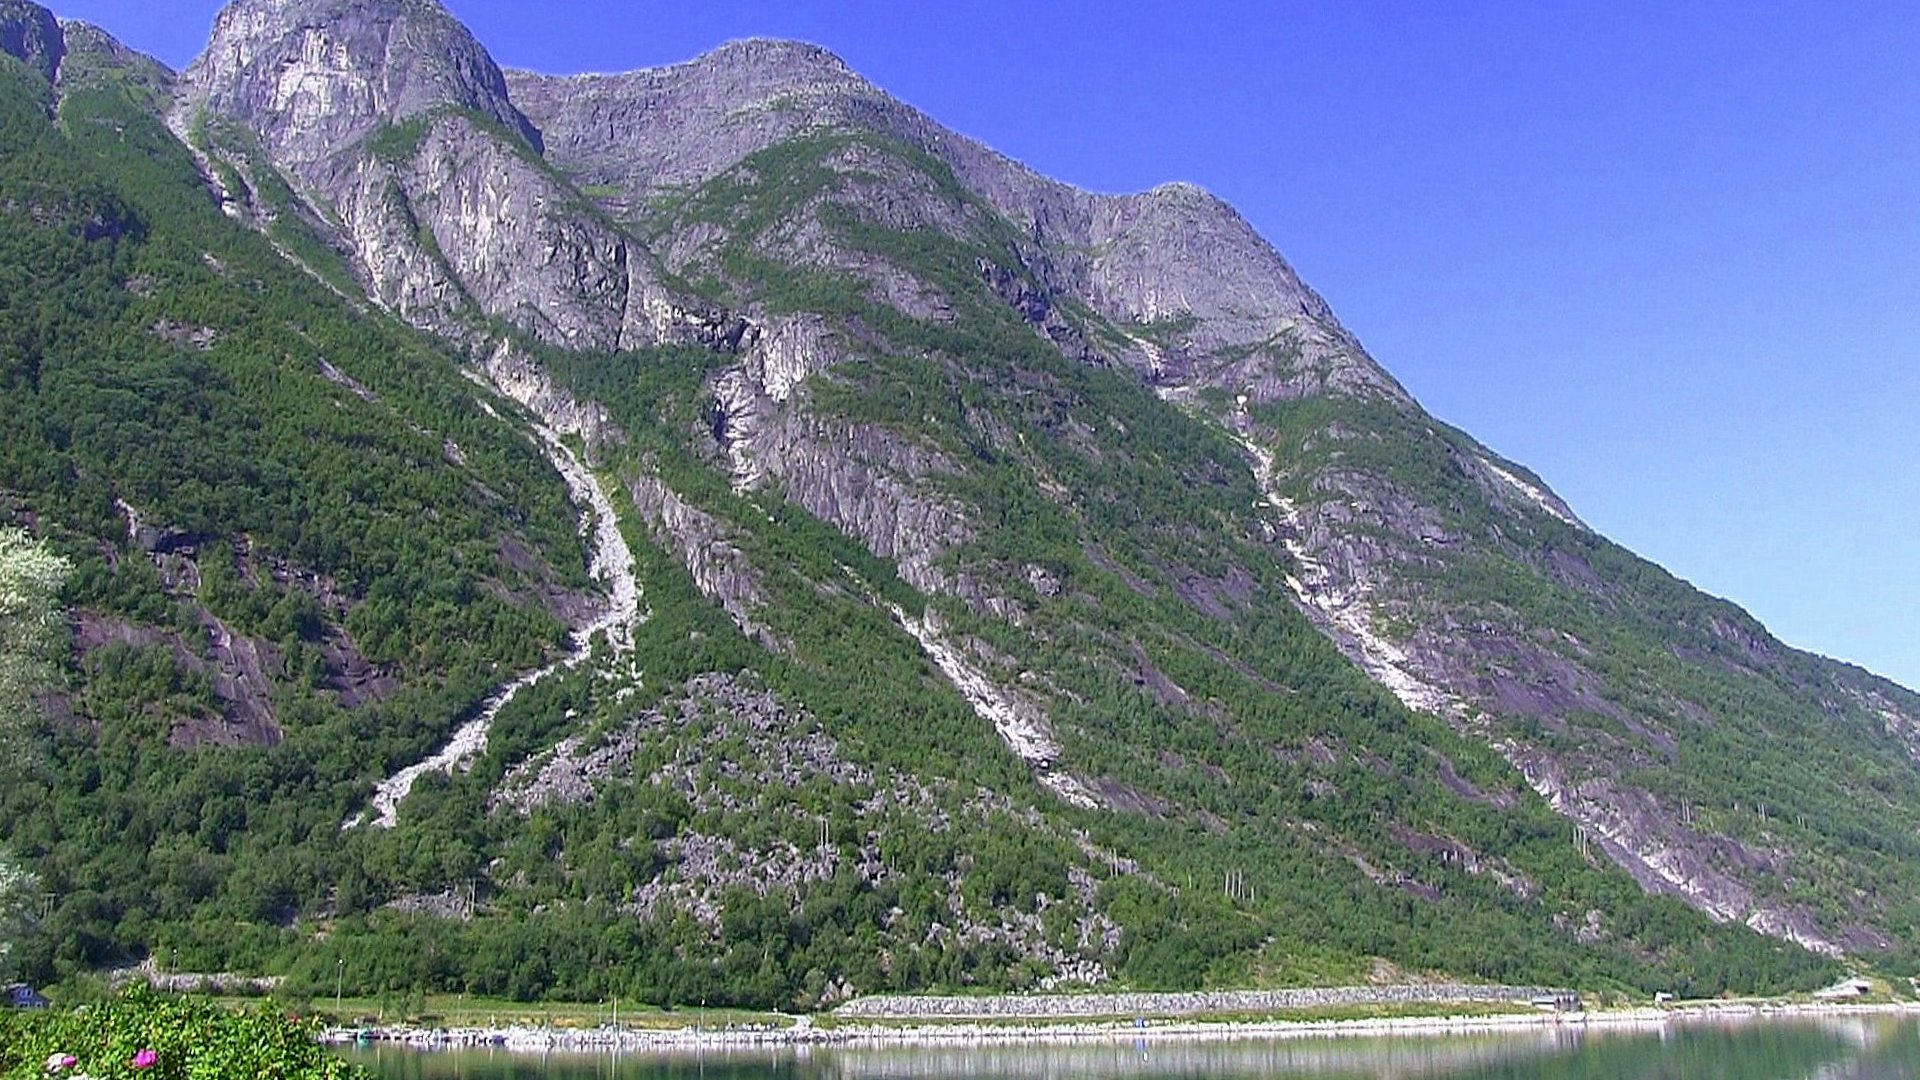 Mountain scenery over National Road 7, Eidfjord © Anne Gullbjørg Digranes